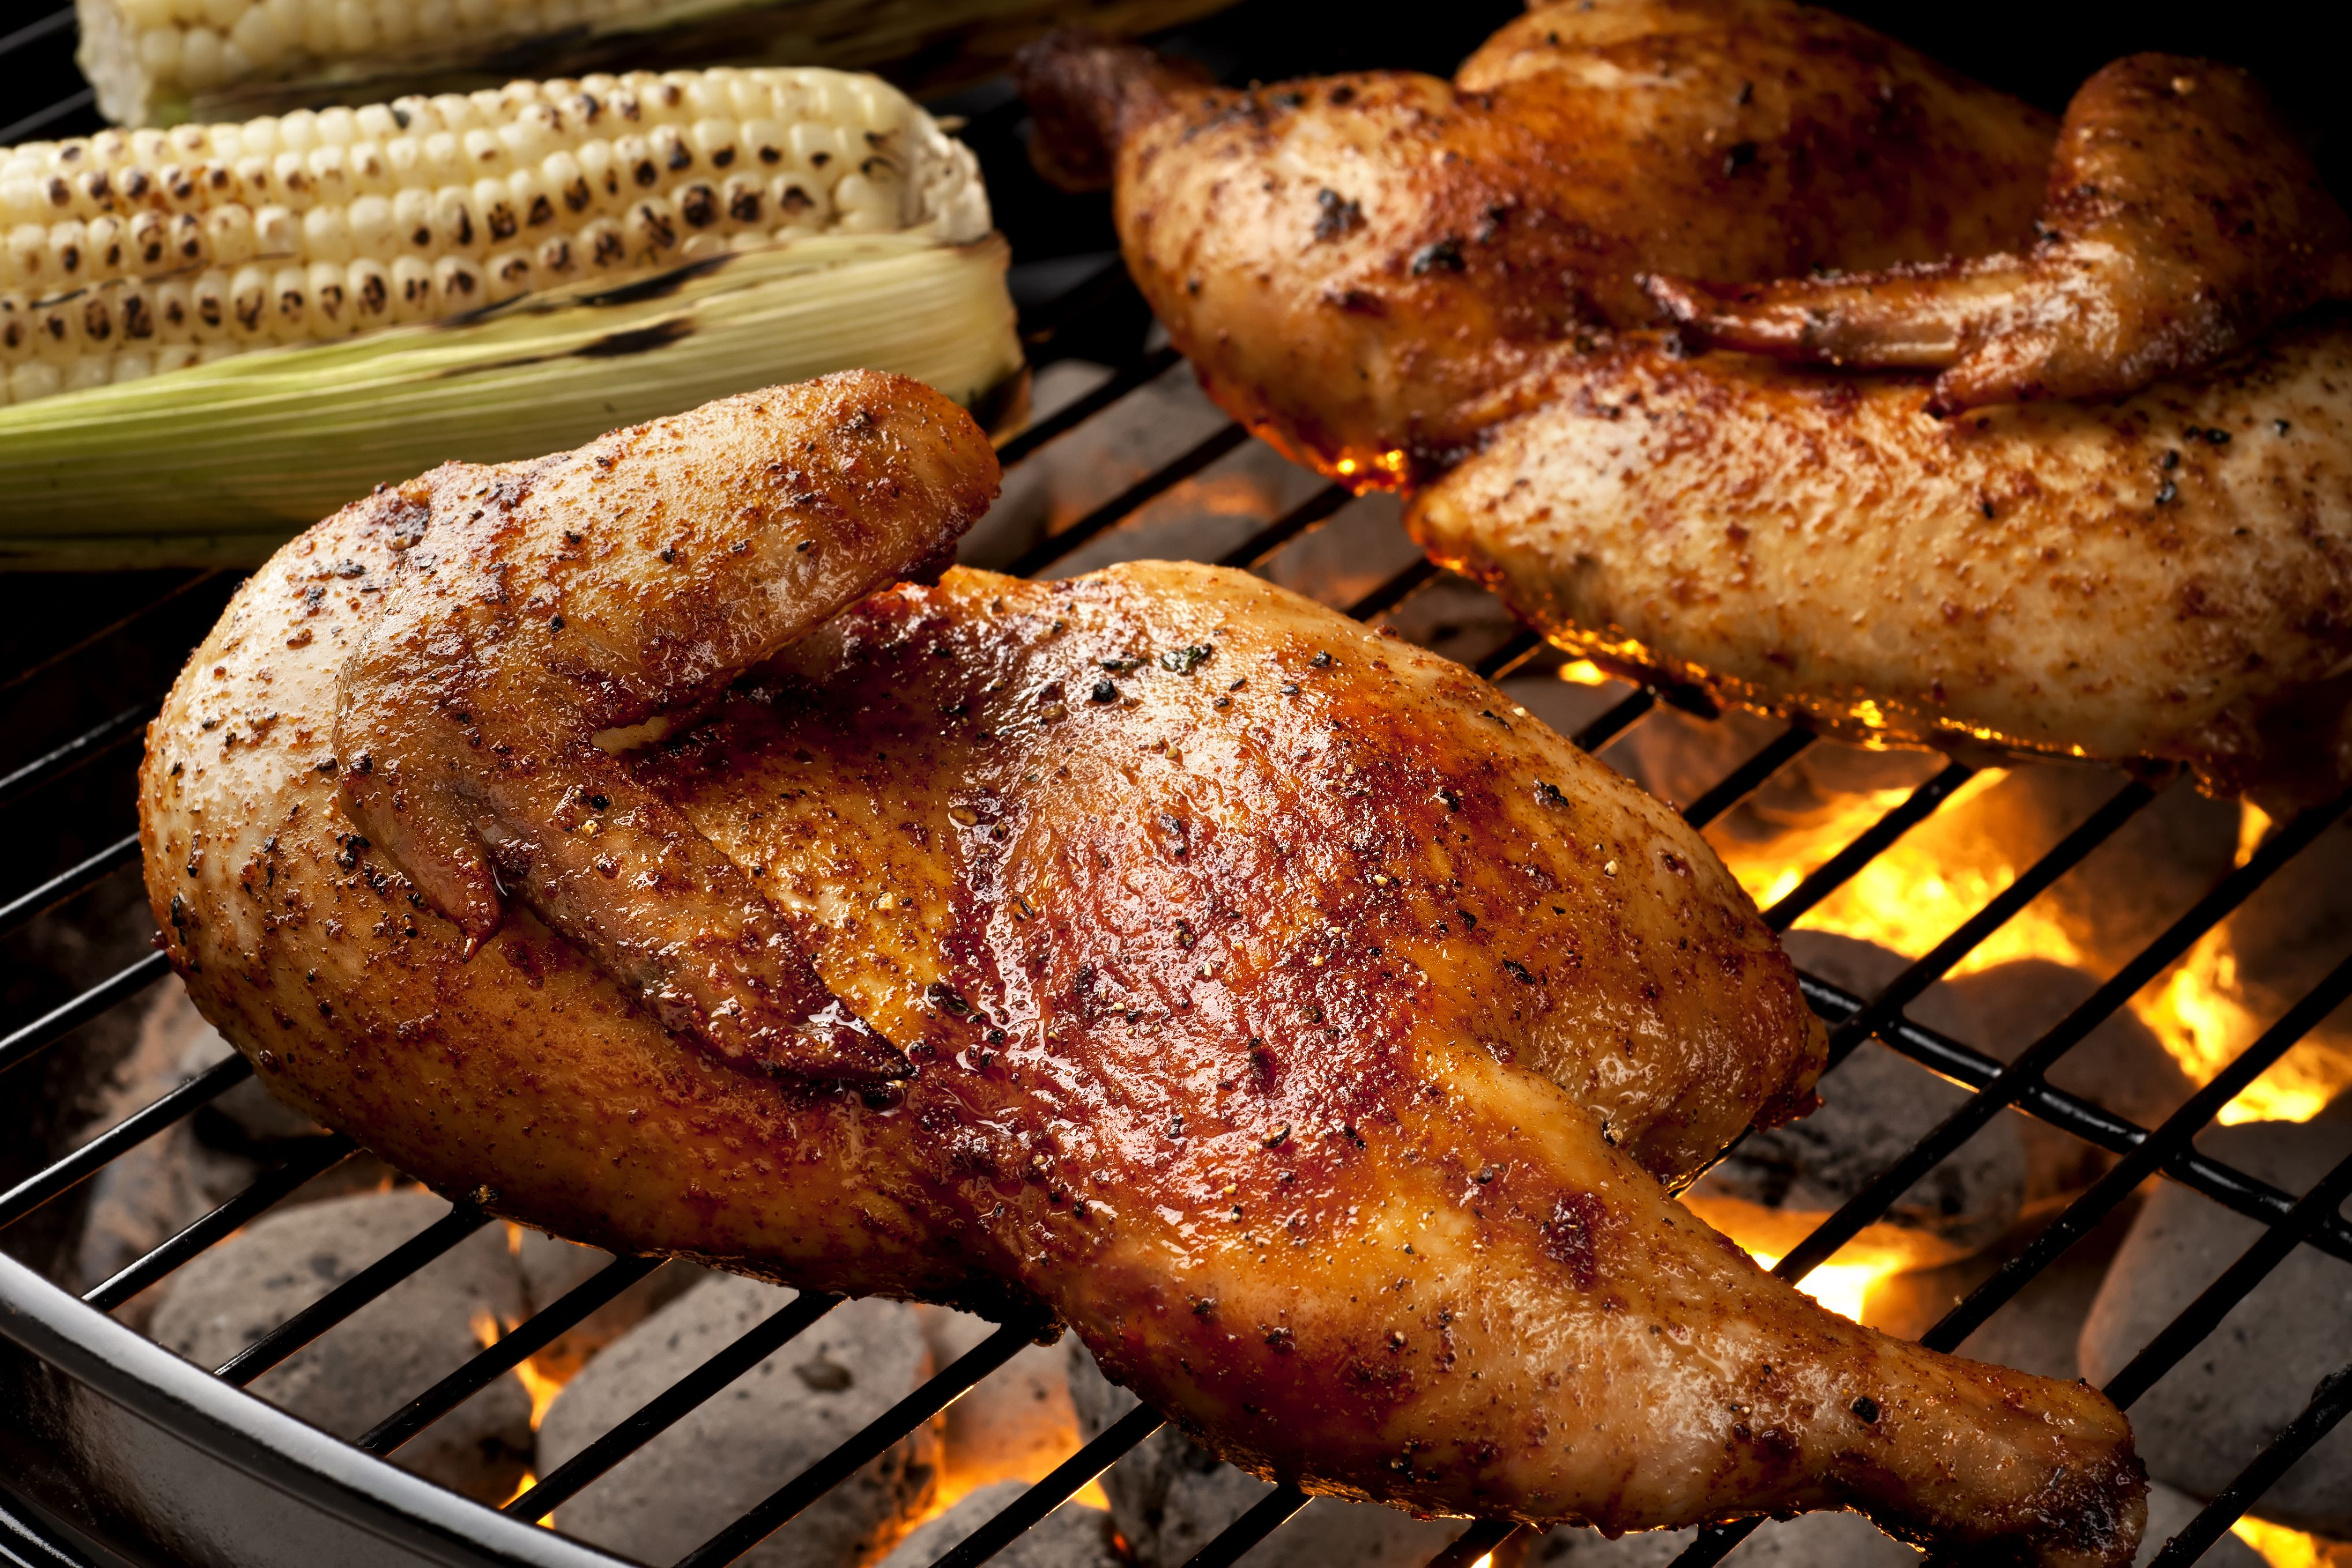 Cornell chicken halves on the grill.